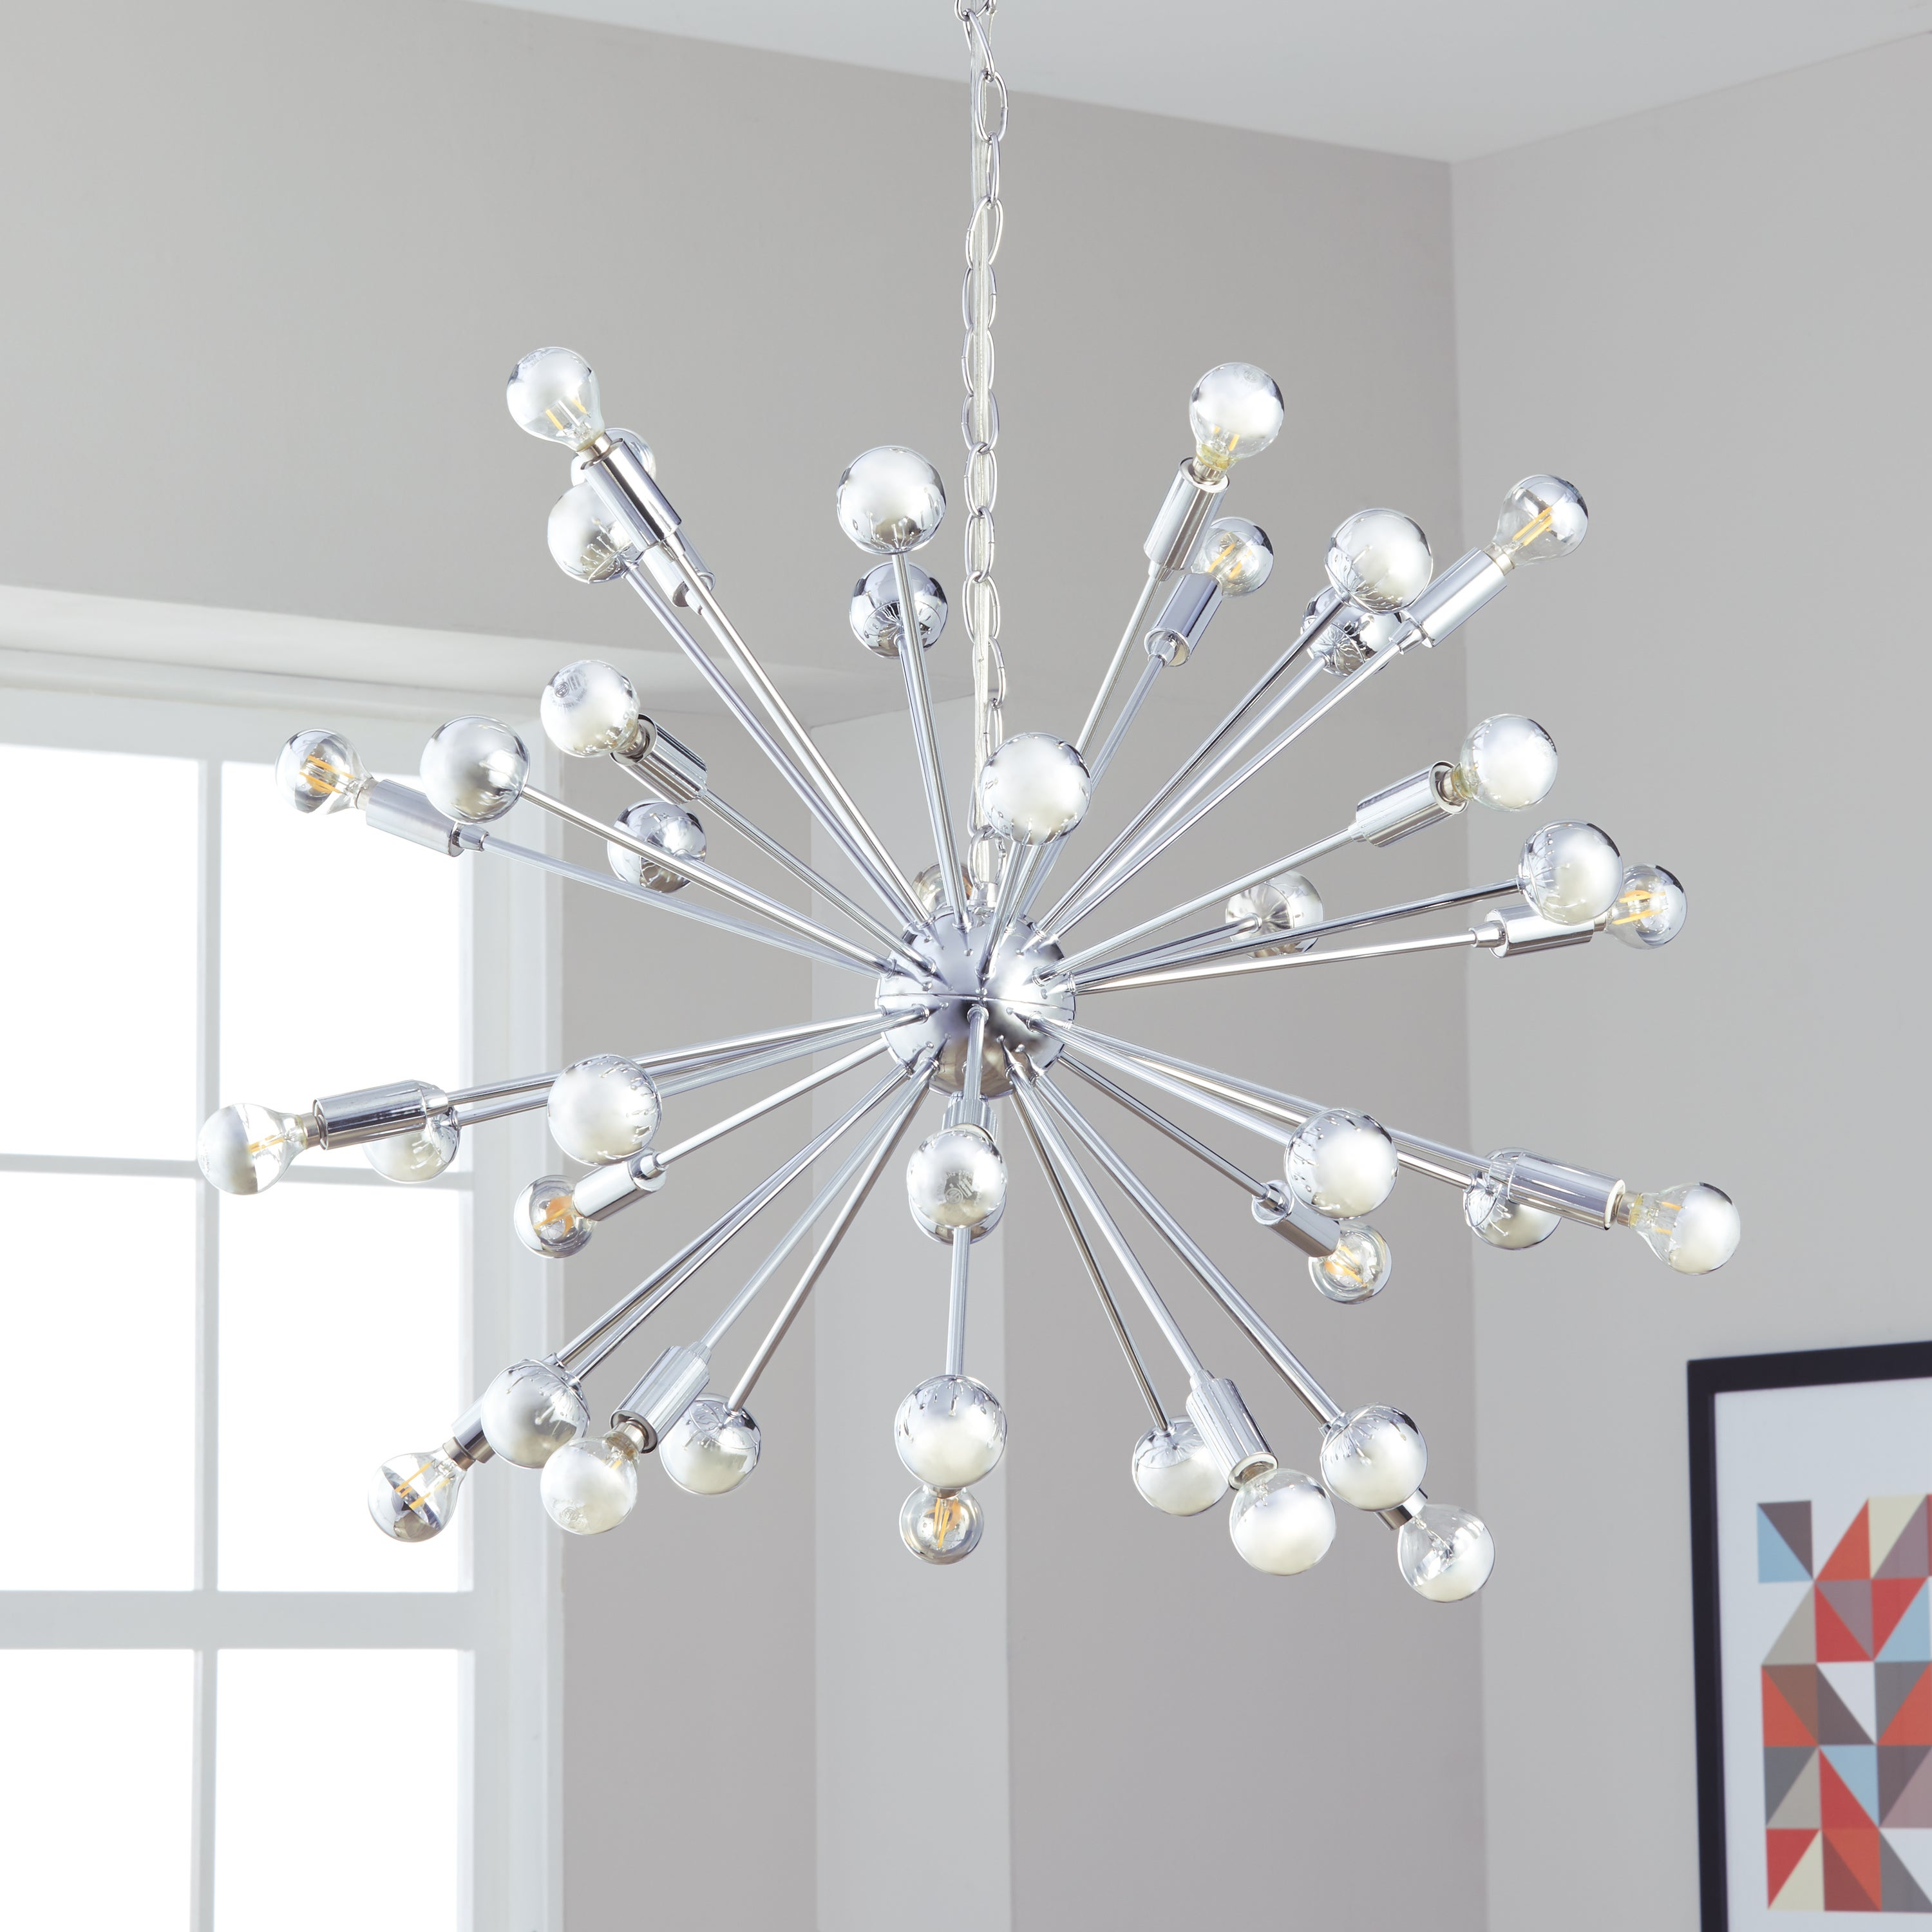 Safavieh Lighting Starburst Sputnik 20 Light Chrome Adjule Pendant Lamp